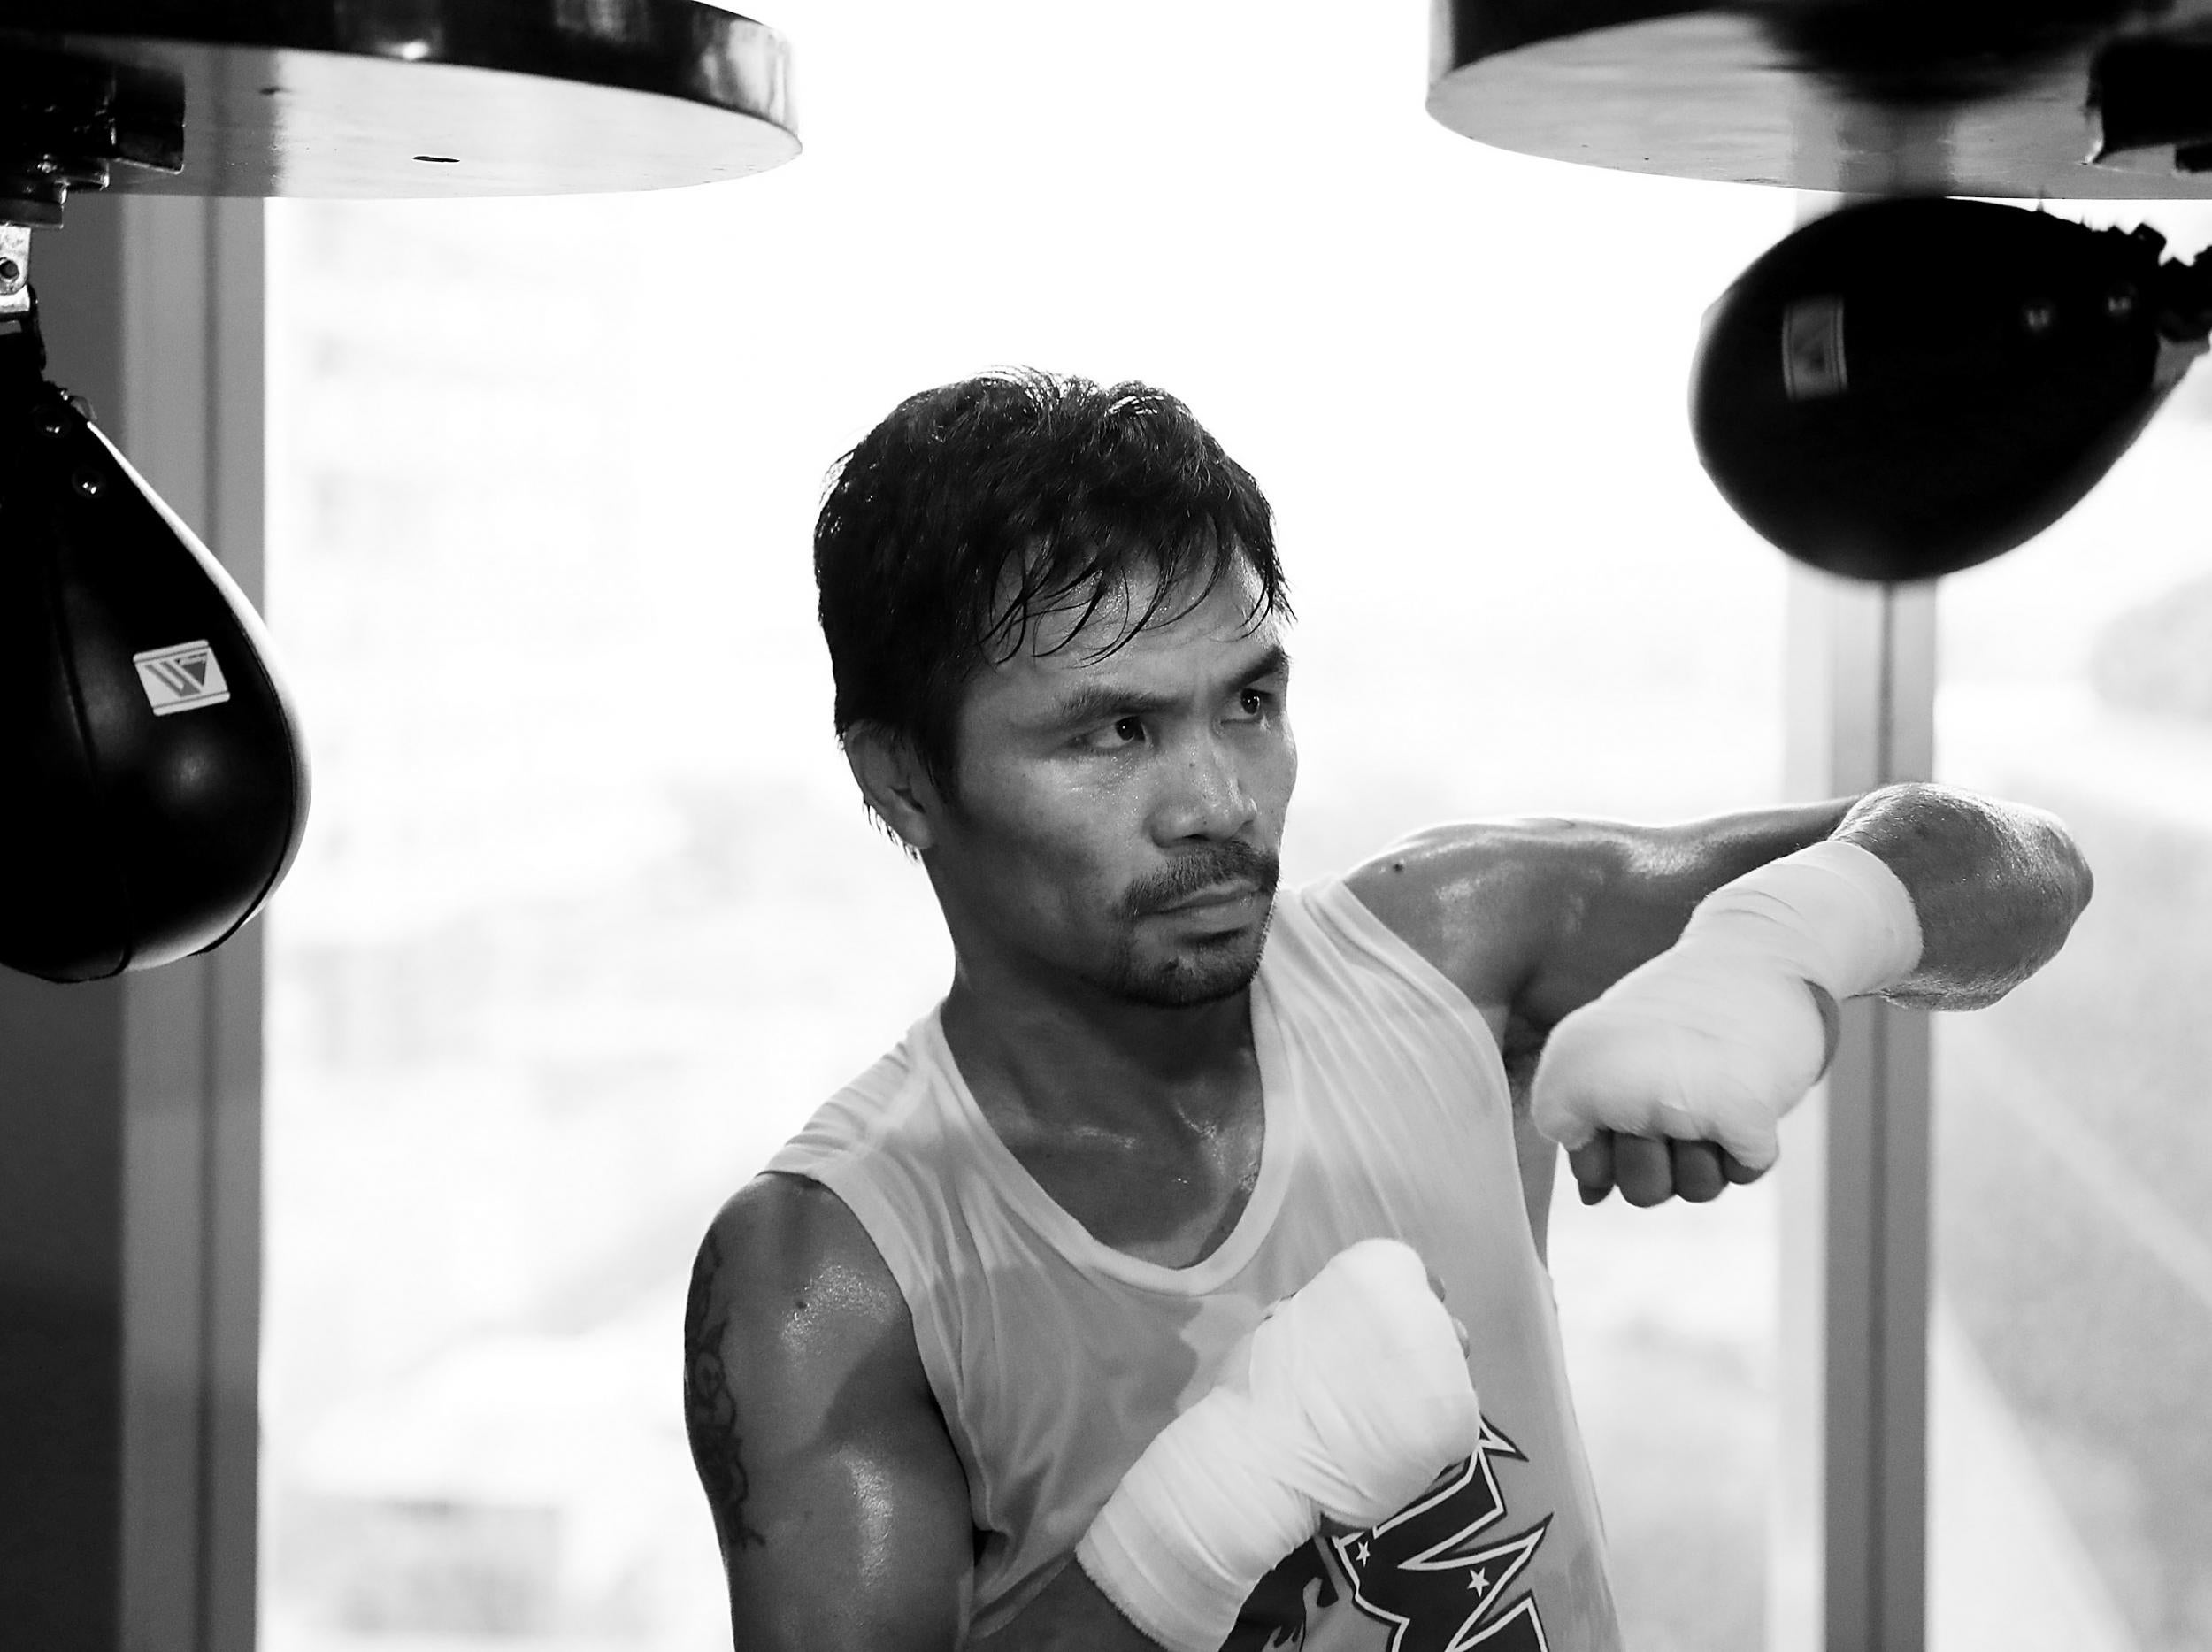 With the end of his career in sight, Manny Pacquiao is fighting for more than just gold against Jeff Horn